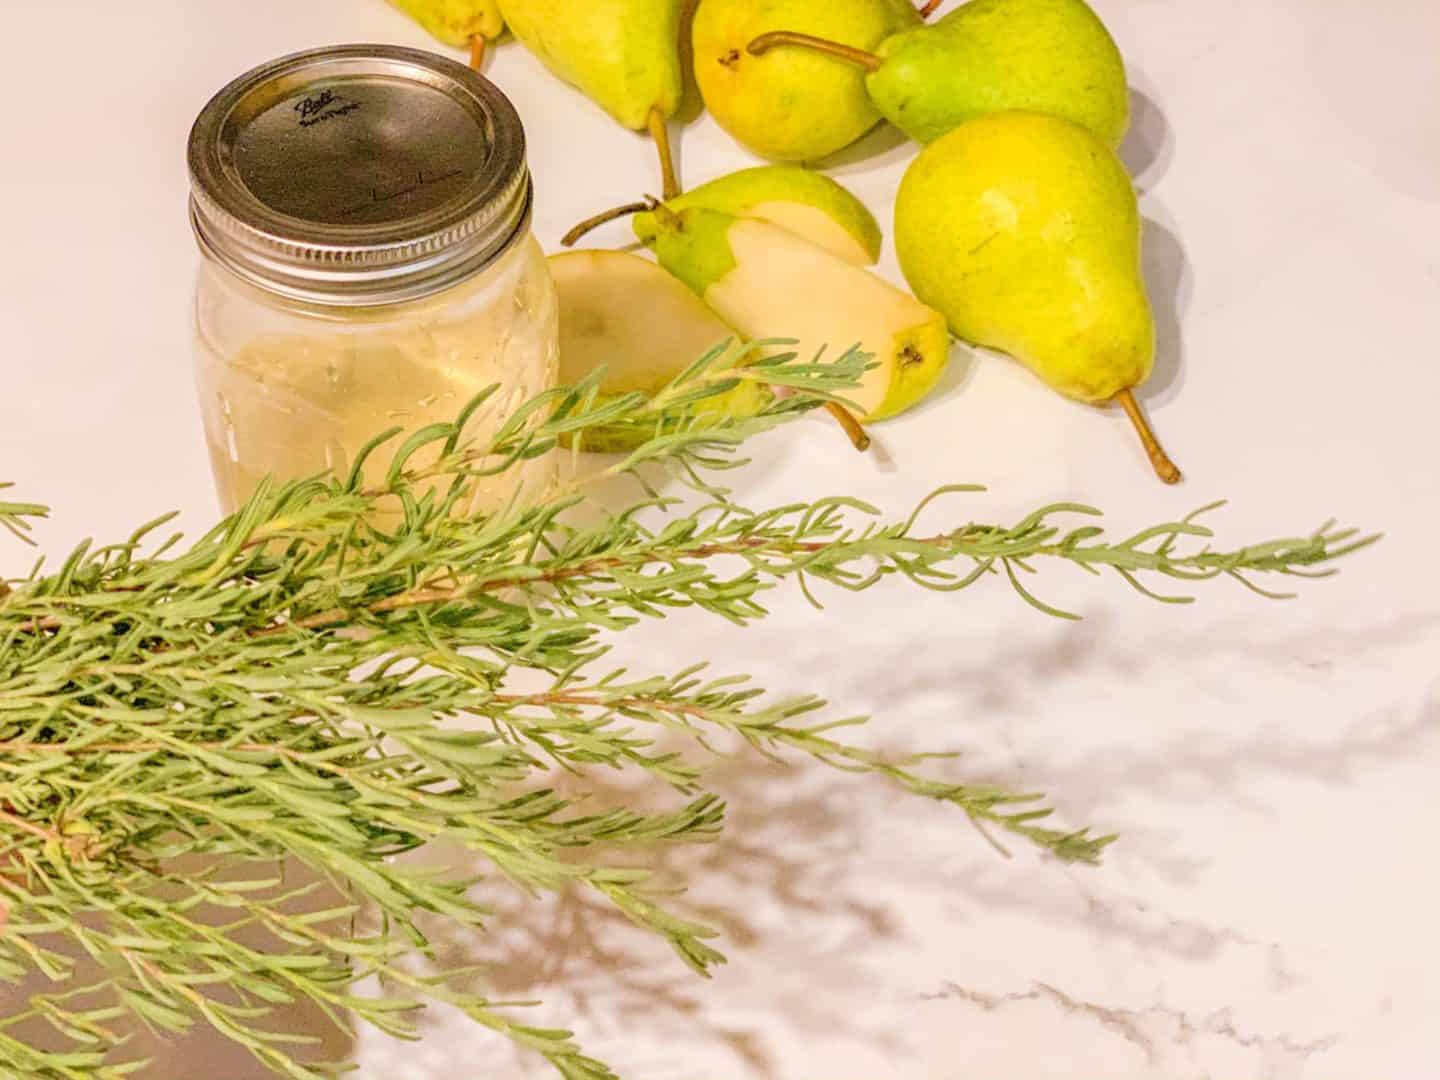 Easy Cocktail Recipes with Lavender, Ginger & Pears